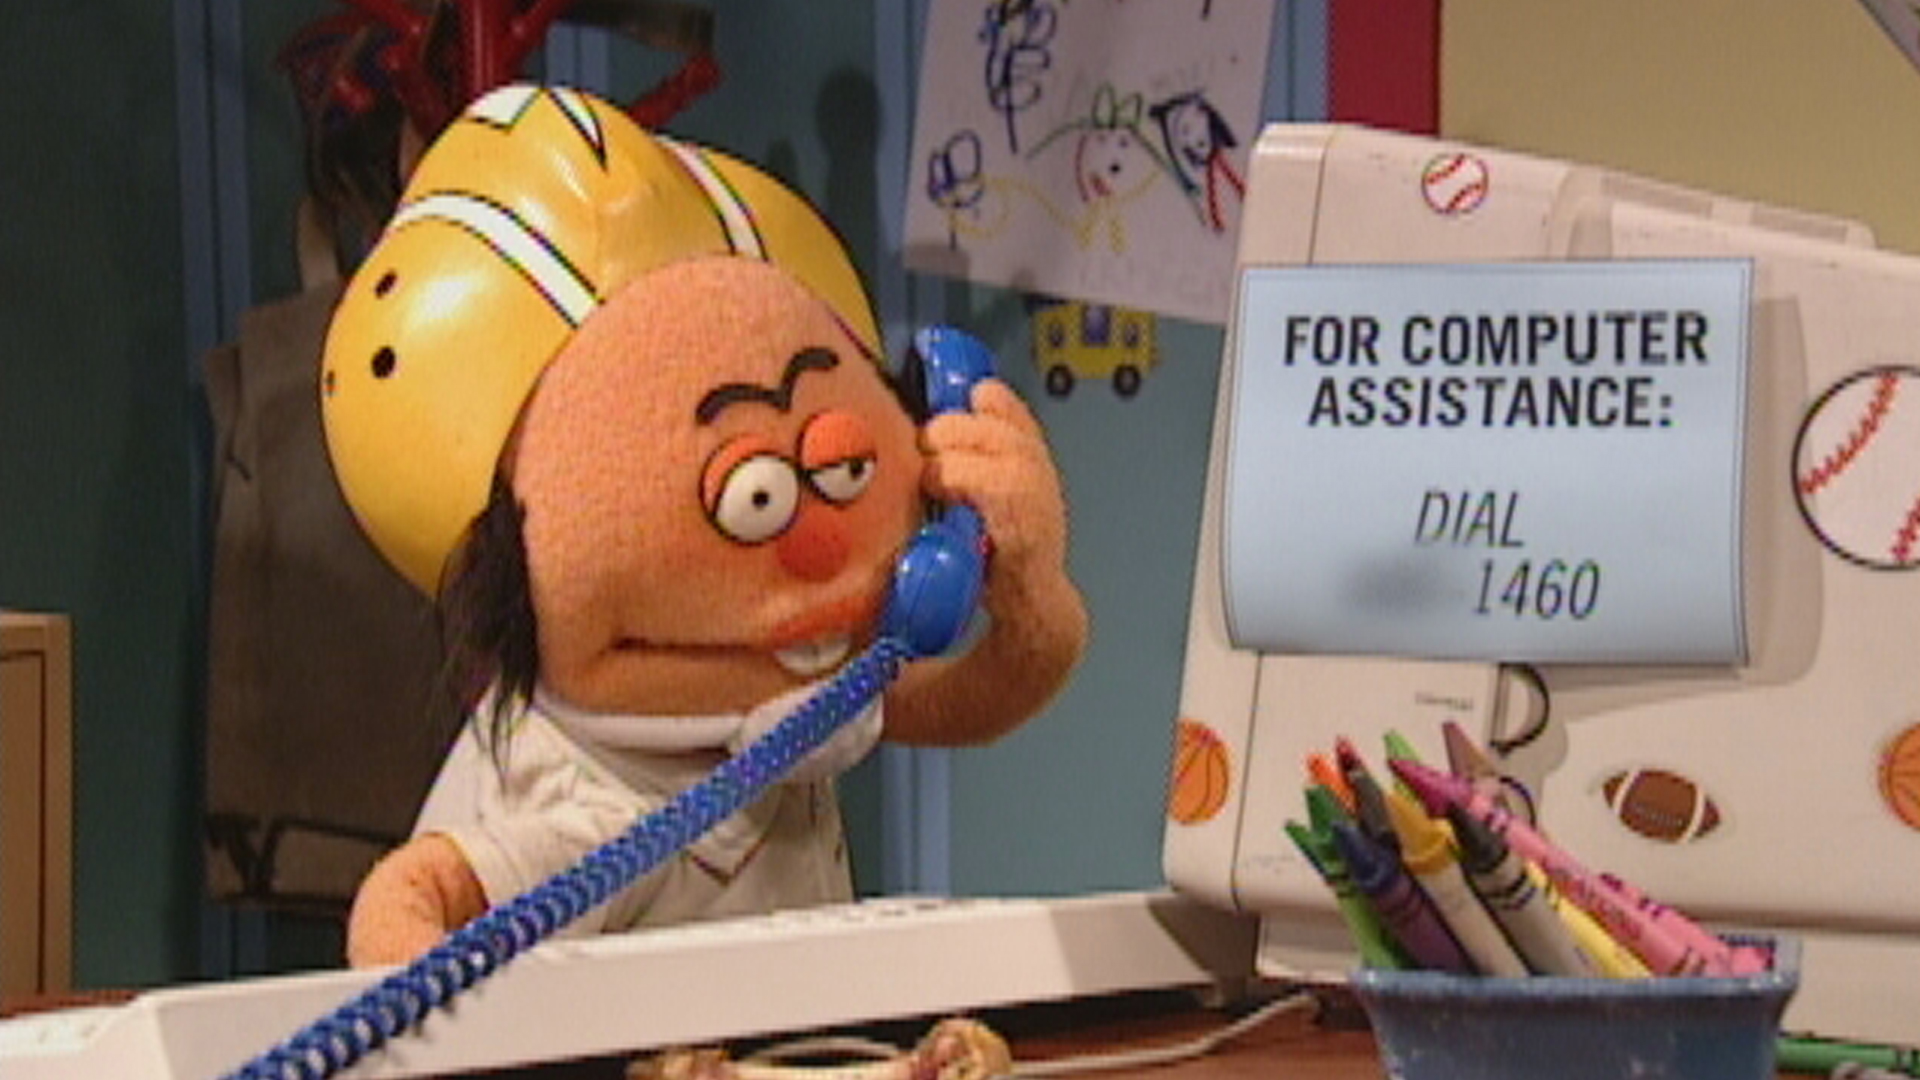 Crank Yankers Yay Meme – With tenor, maker of gif keyboard, add popular crank yankers yay animated gifs to your conversations.